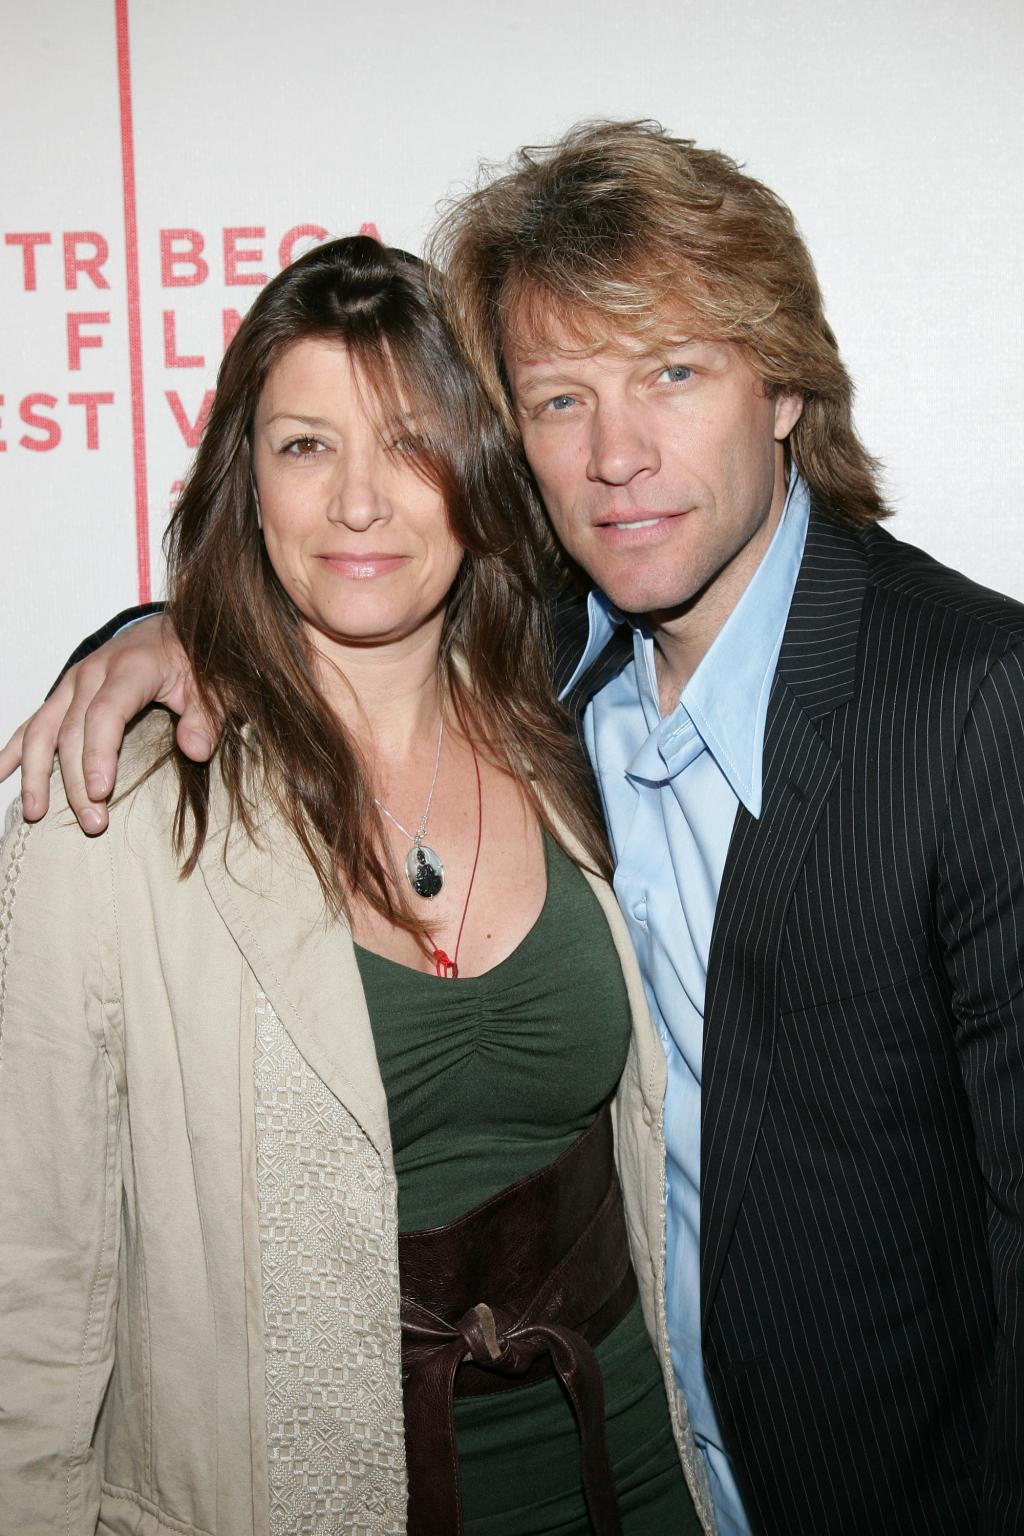 Las Vegas Weddings: Jon Bon Jovi & Dorothea Hurley - Opening Night